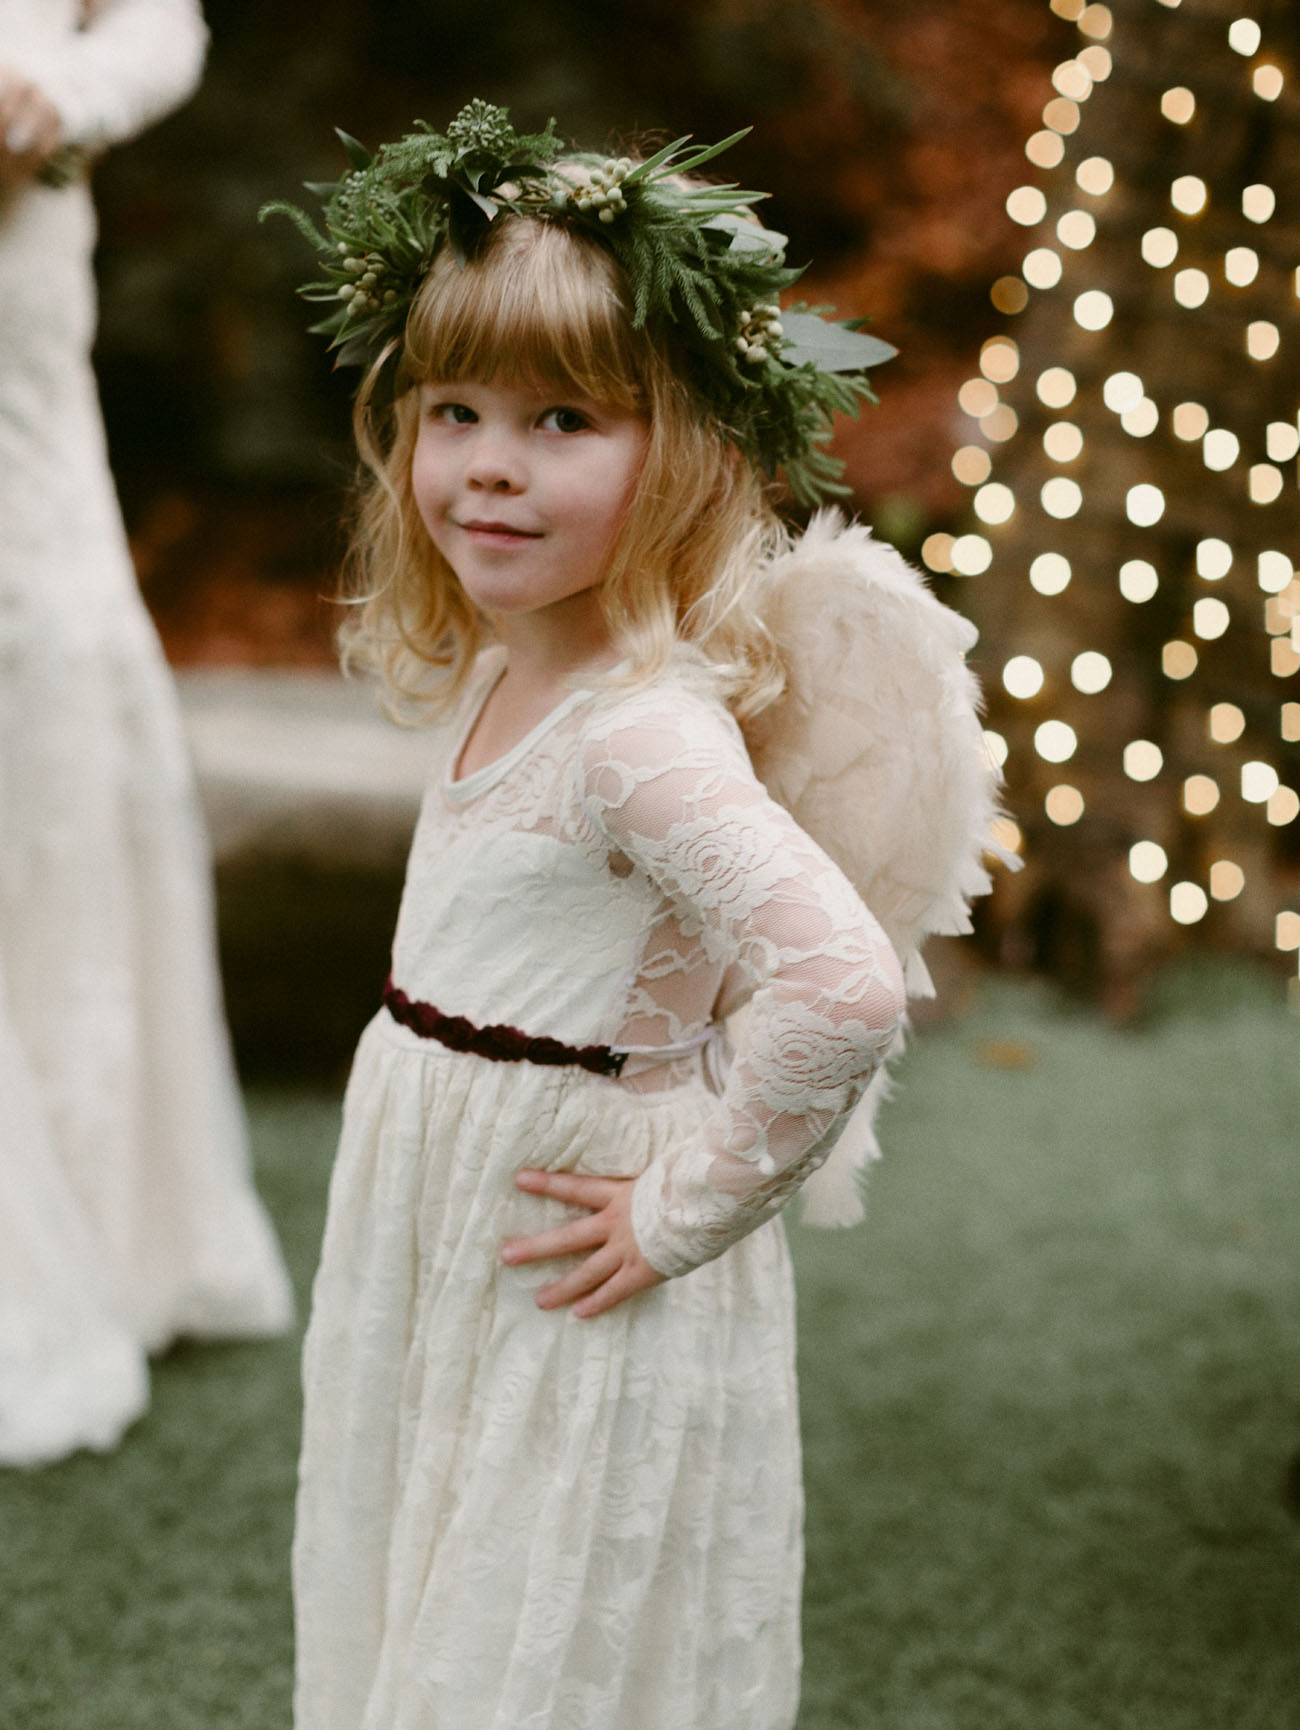 The darling flower girl is wearing a lace dress from Posh Peanut Kids and feather angel wings